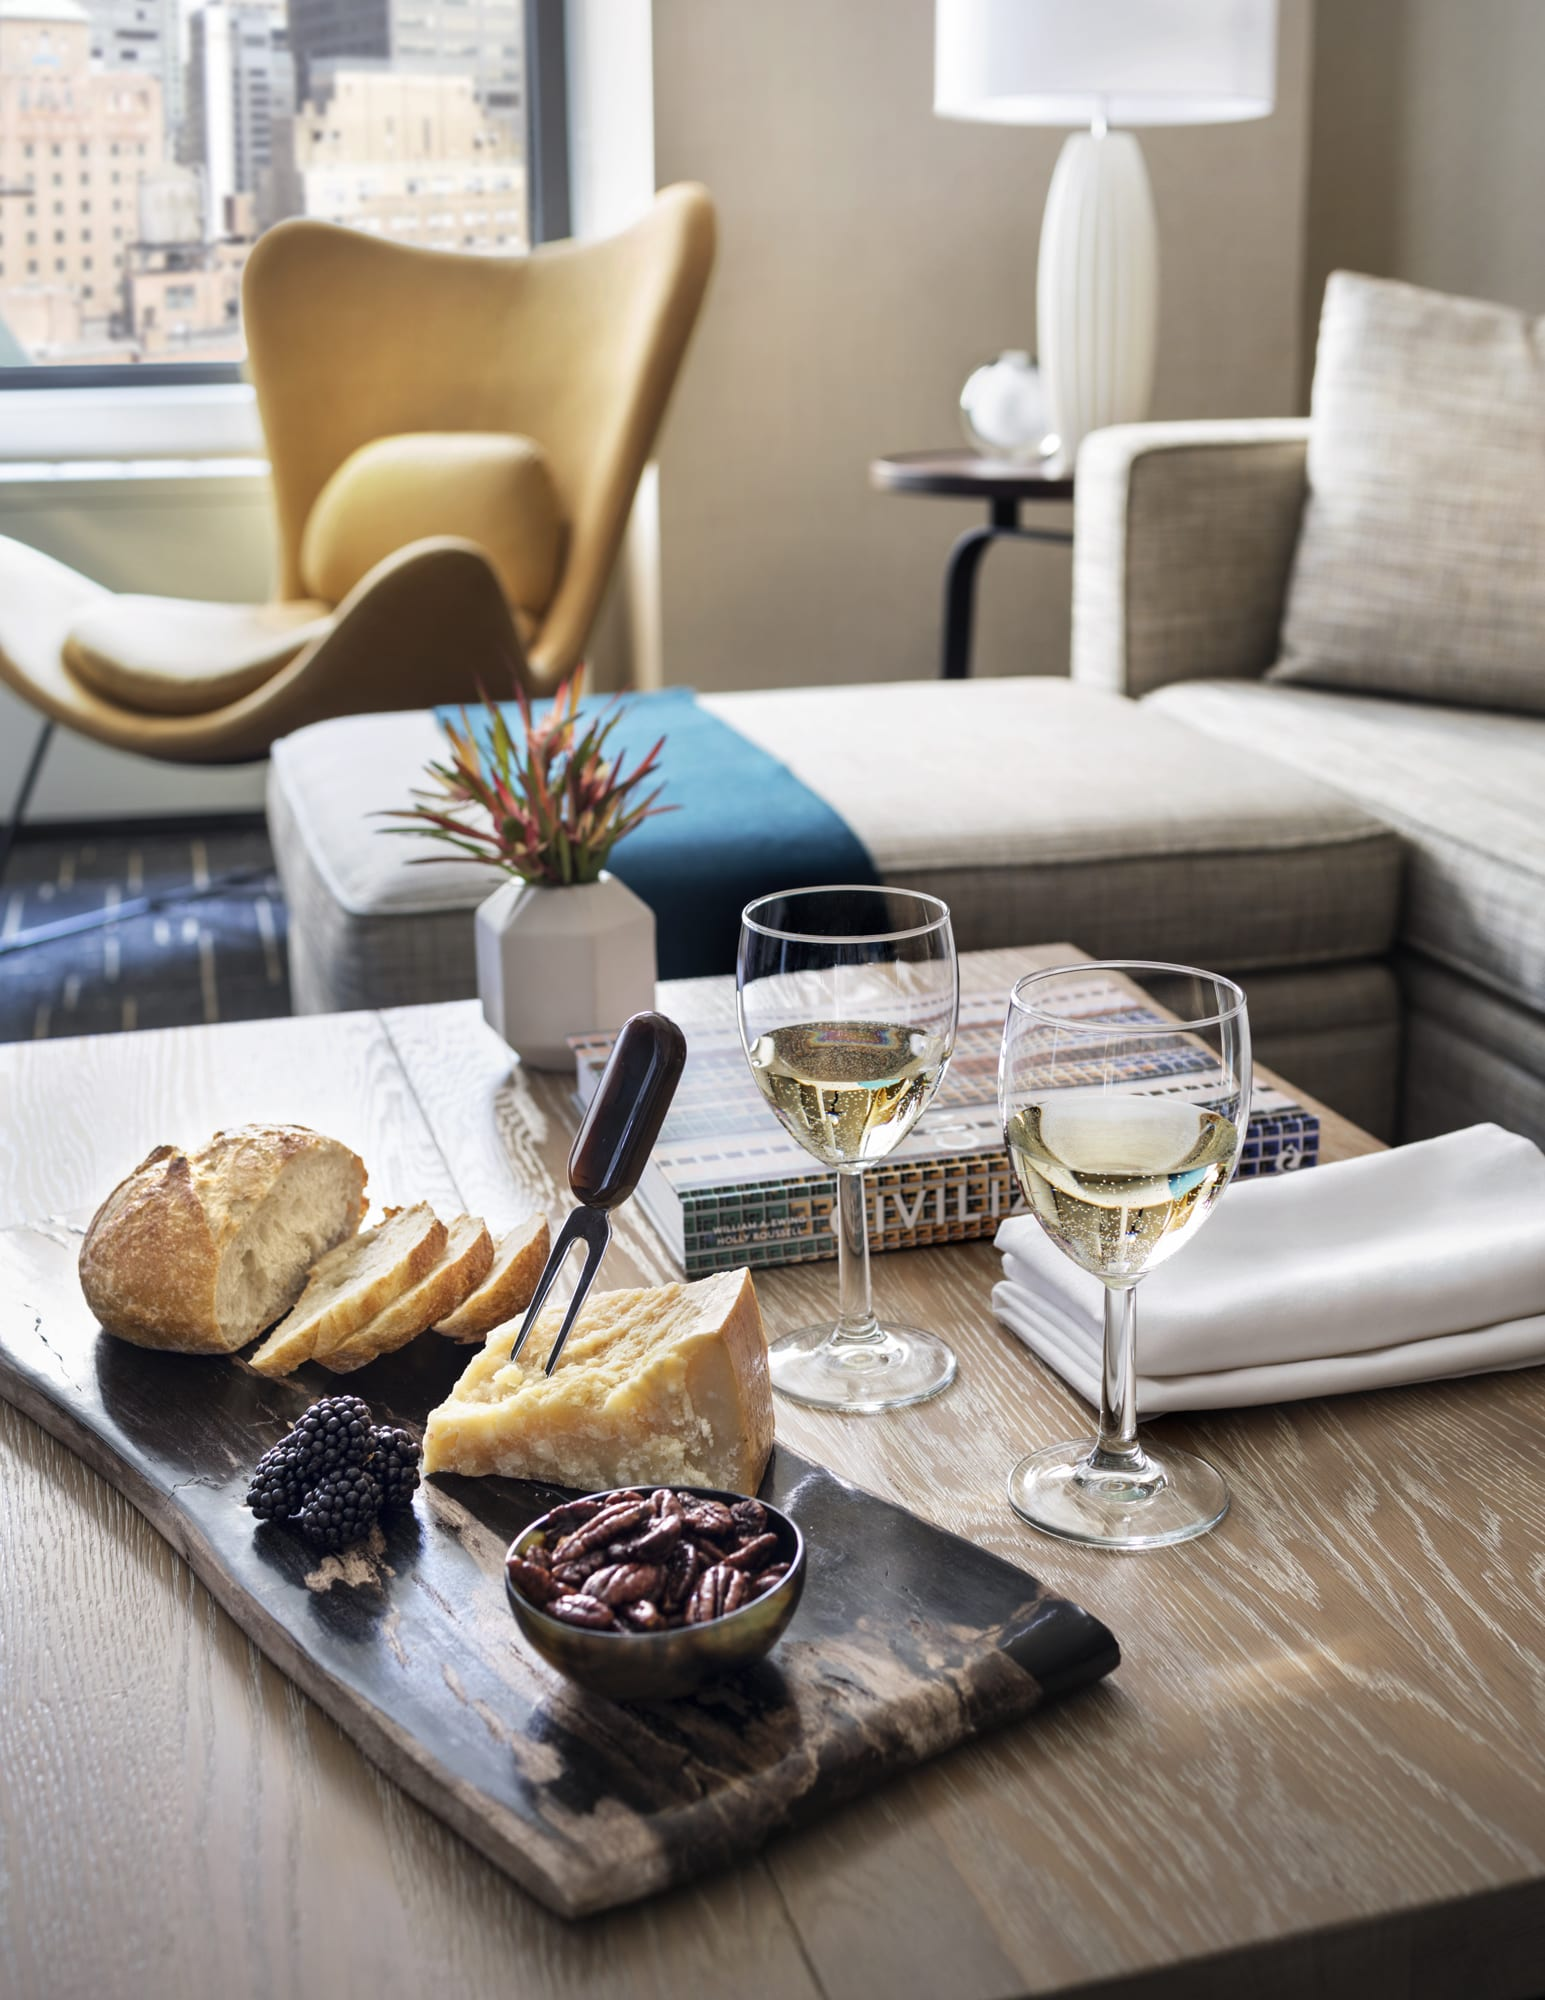 Shelburne Hotel & Suites Cheese Board And Glasses Of Wine In One Bedroom Apartment Living Room